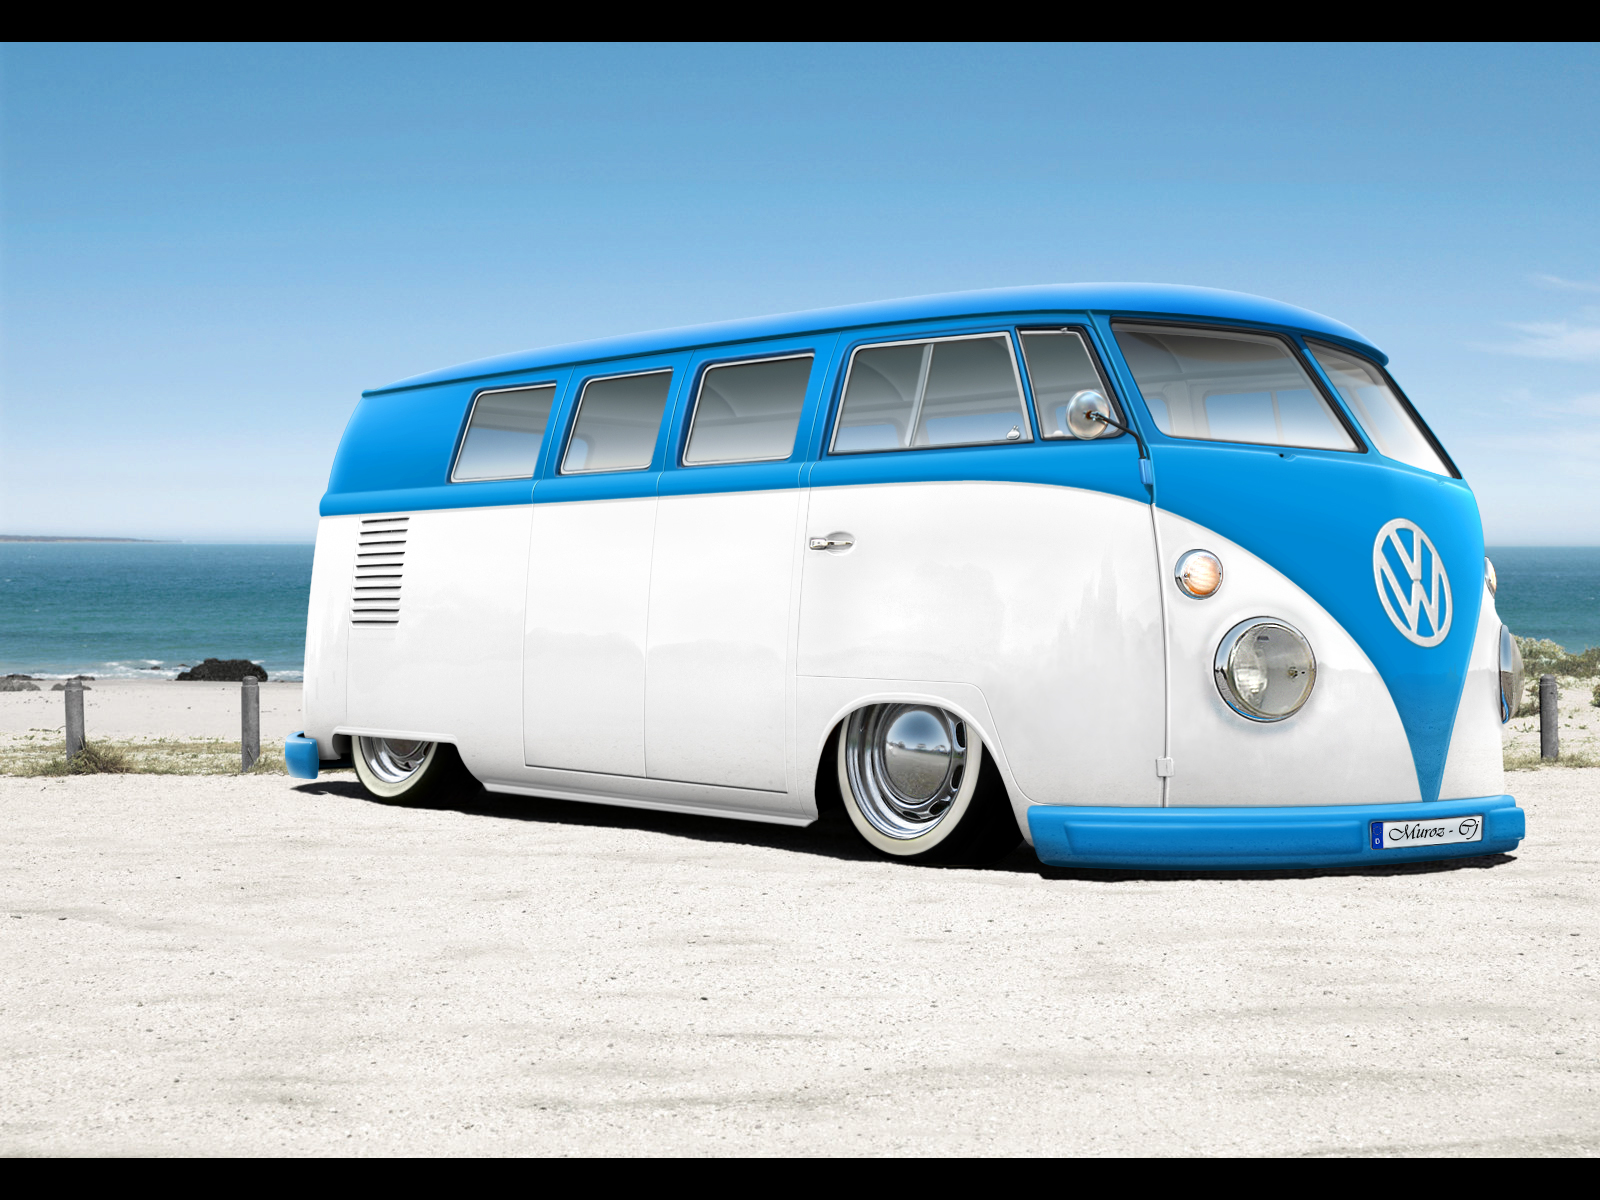 vw volkswagen combi van bus lowered wallpaper 1600x1200 1600x1200